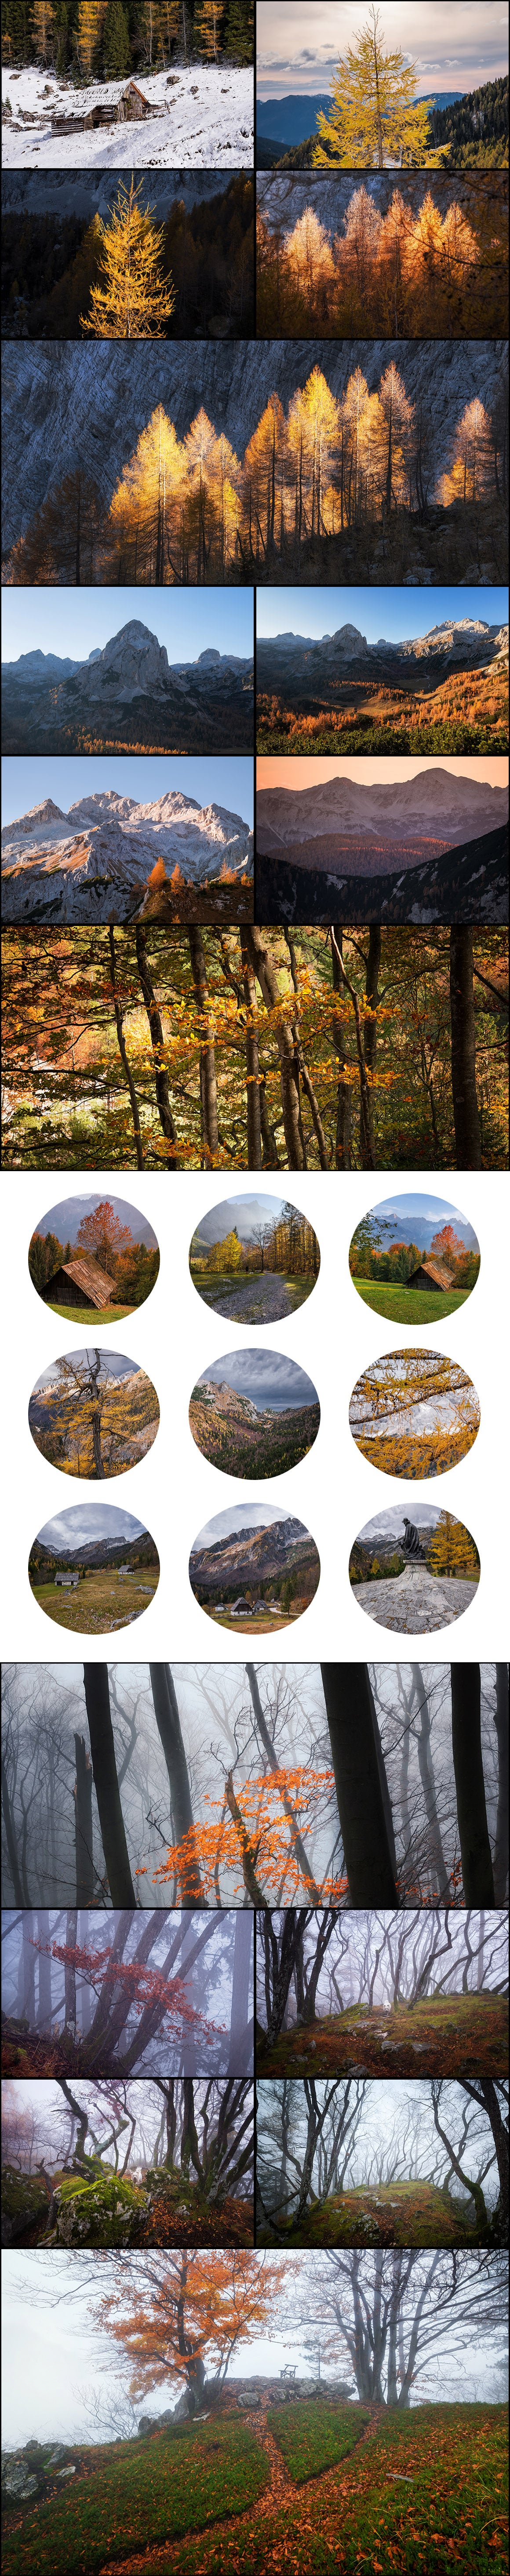 500+ Stock Images. Ultimate Photo Bundle  – $59 - PREVIEW autumn3